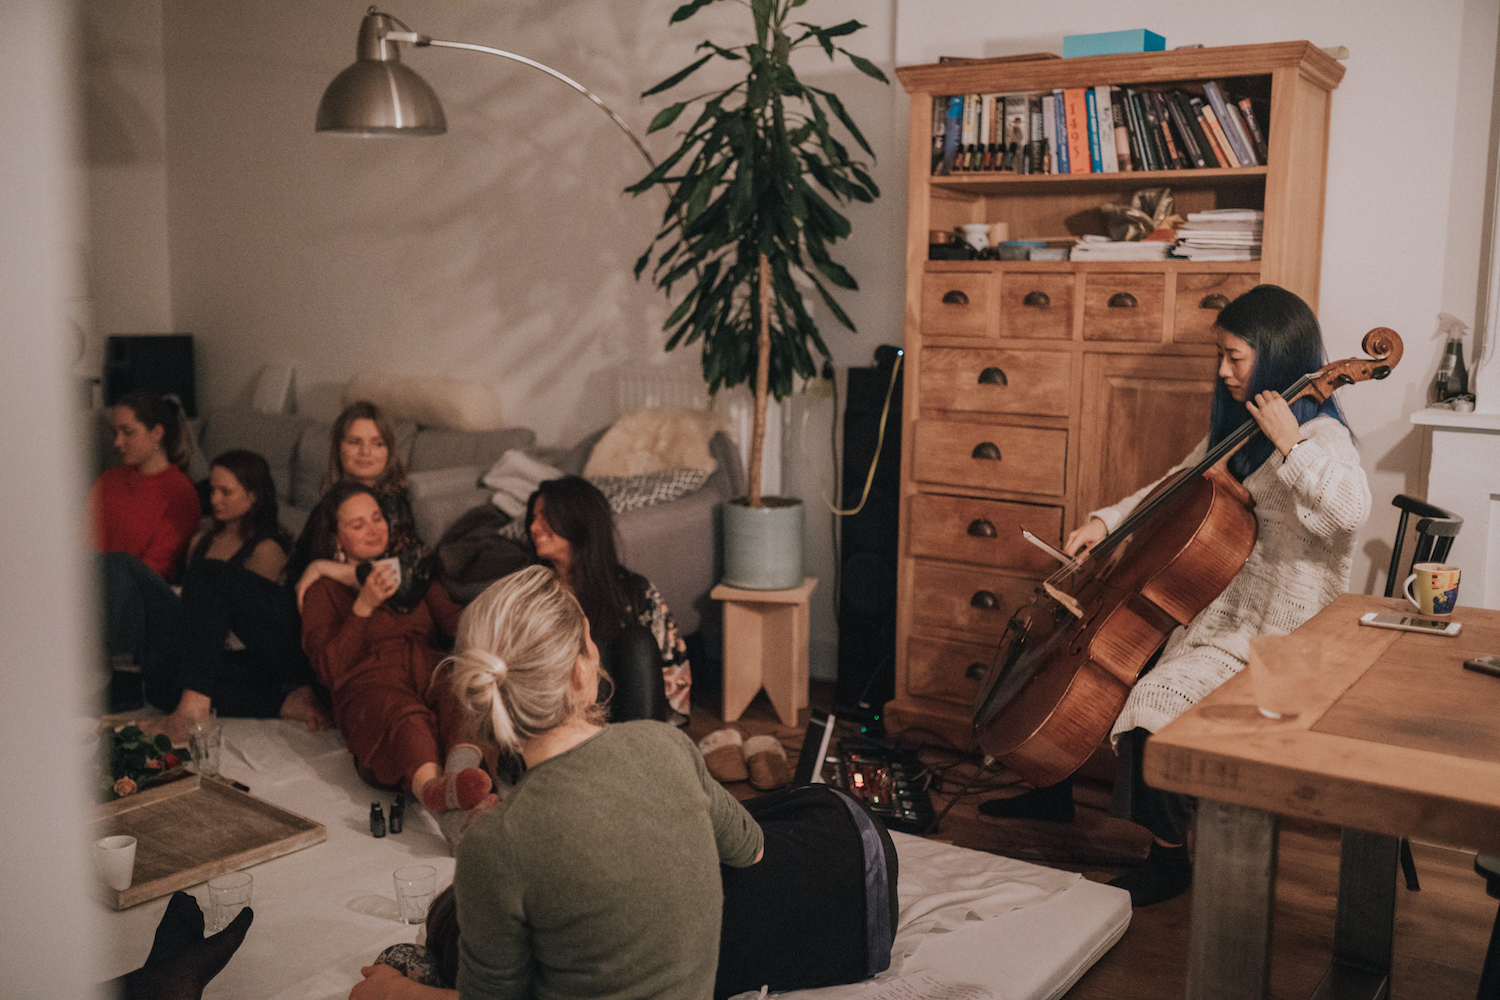 women's-circle-cacao-essential-oils-ceremony-live-cello-meditation-photo-by-Birgit-Loit-Isadora-Caporali-The-Wong-Janice-cellist-Amsteram.jpg